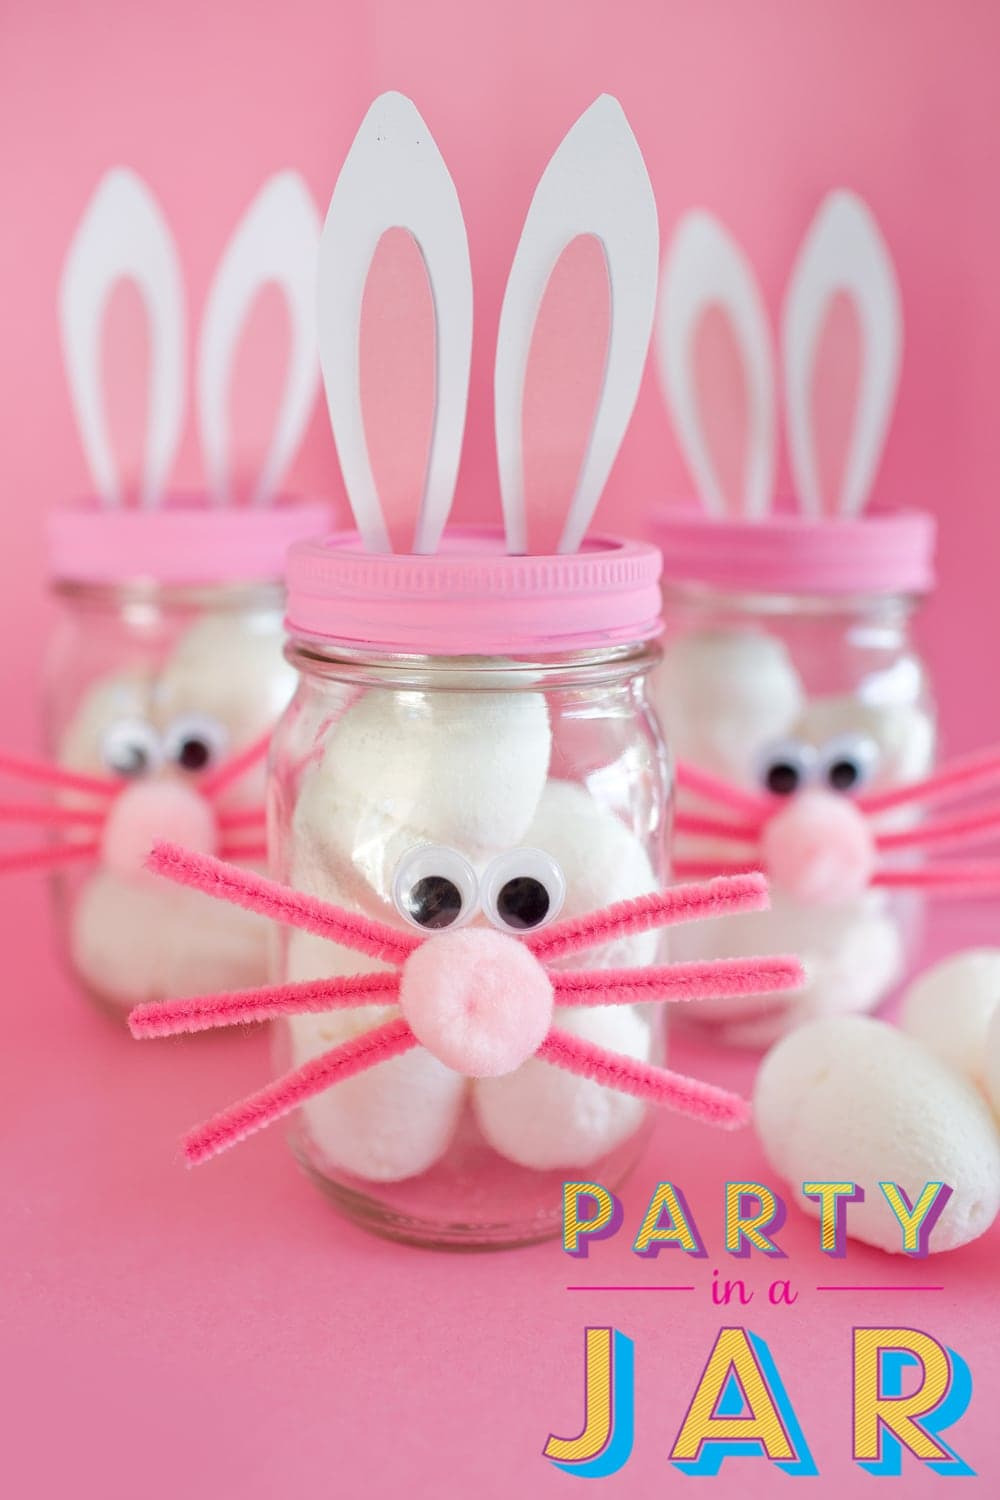 Party in a Jar by Vanessa Coppola 2